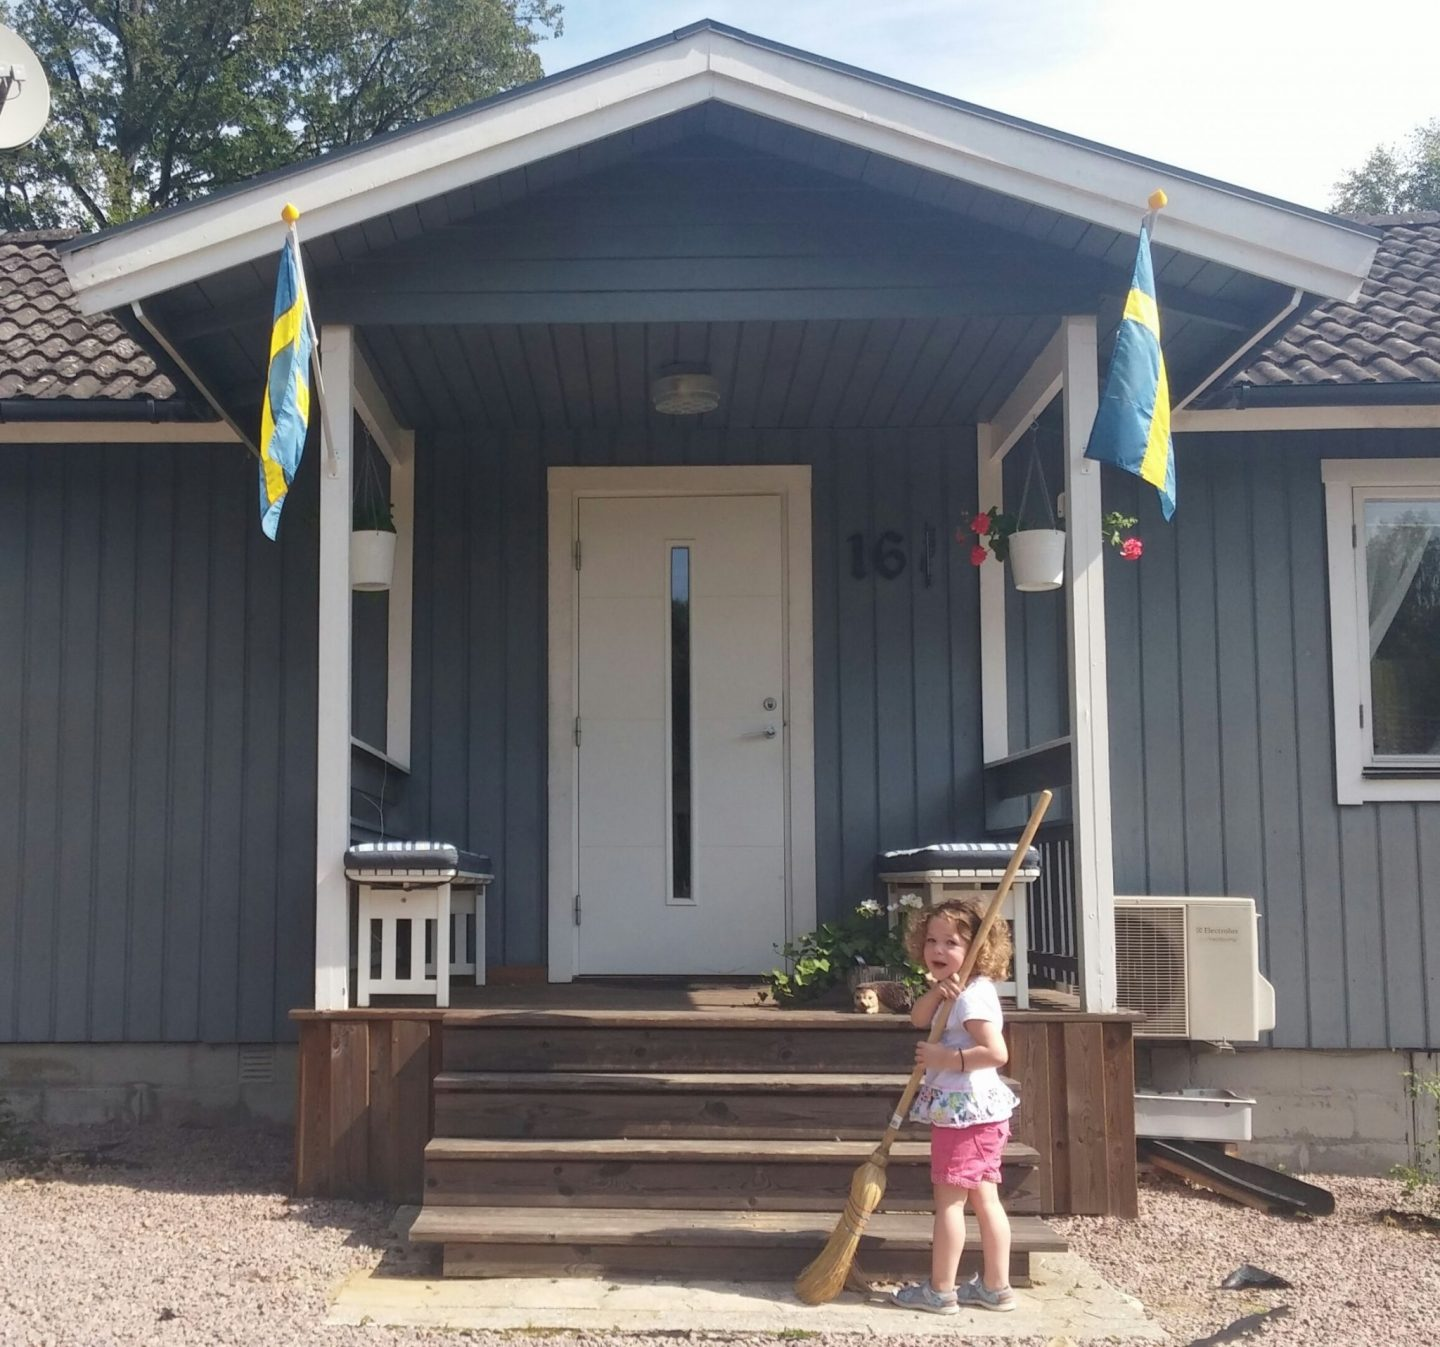 House swap to summer house in Skane, Sweden Summer 2017